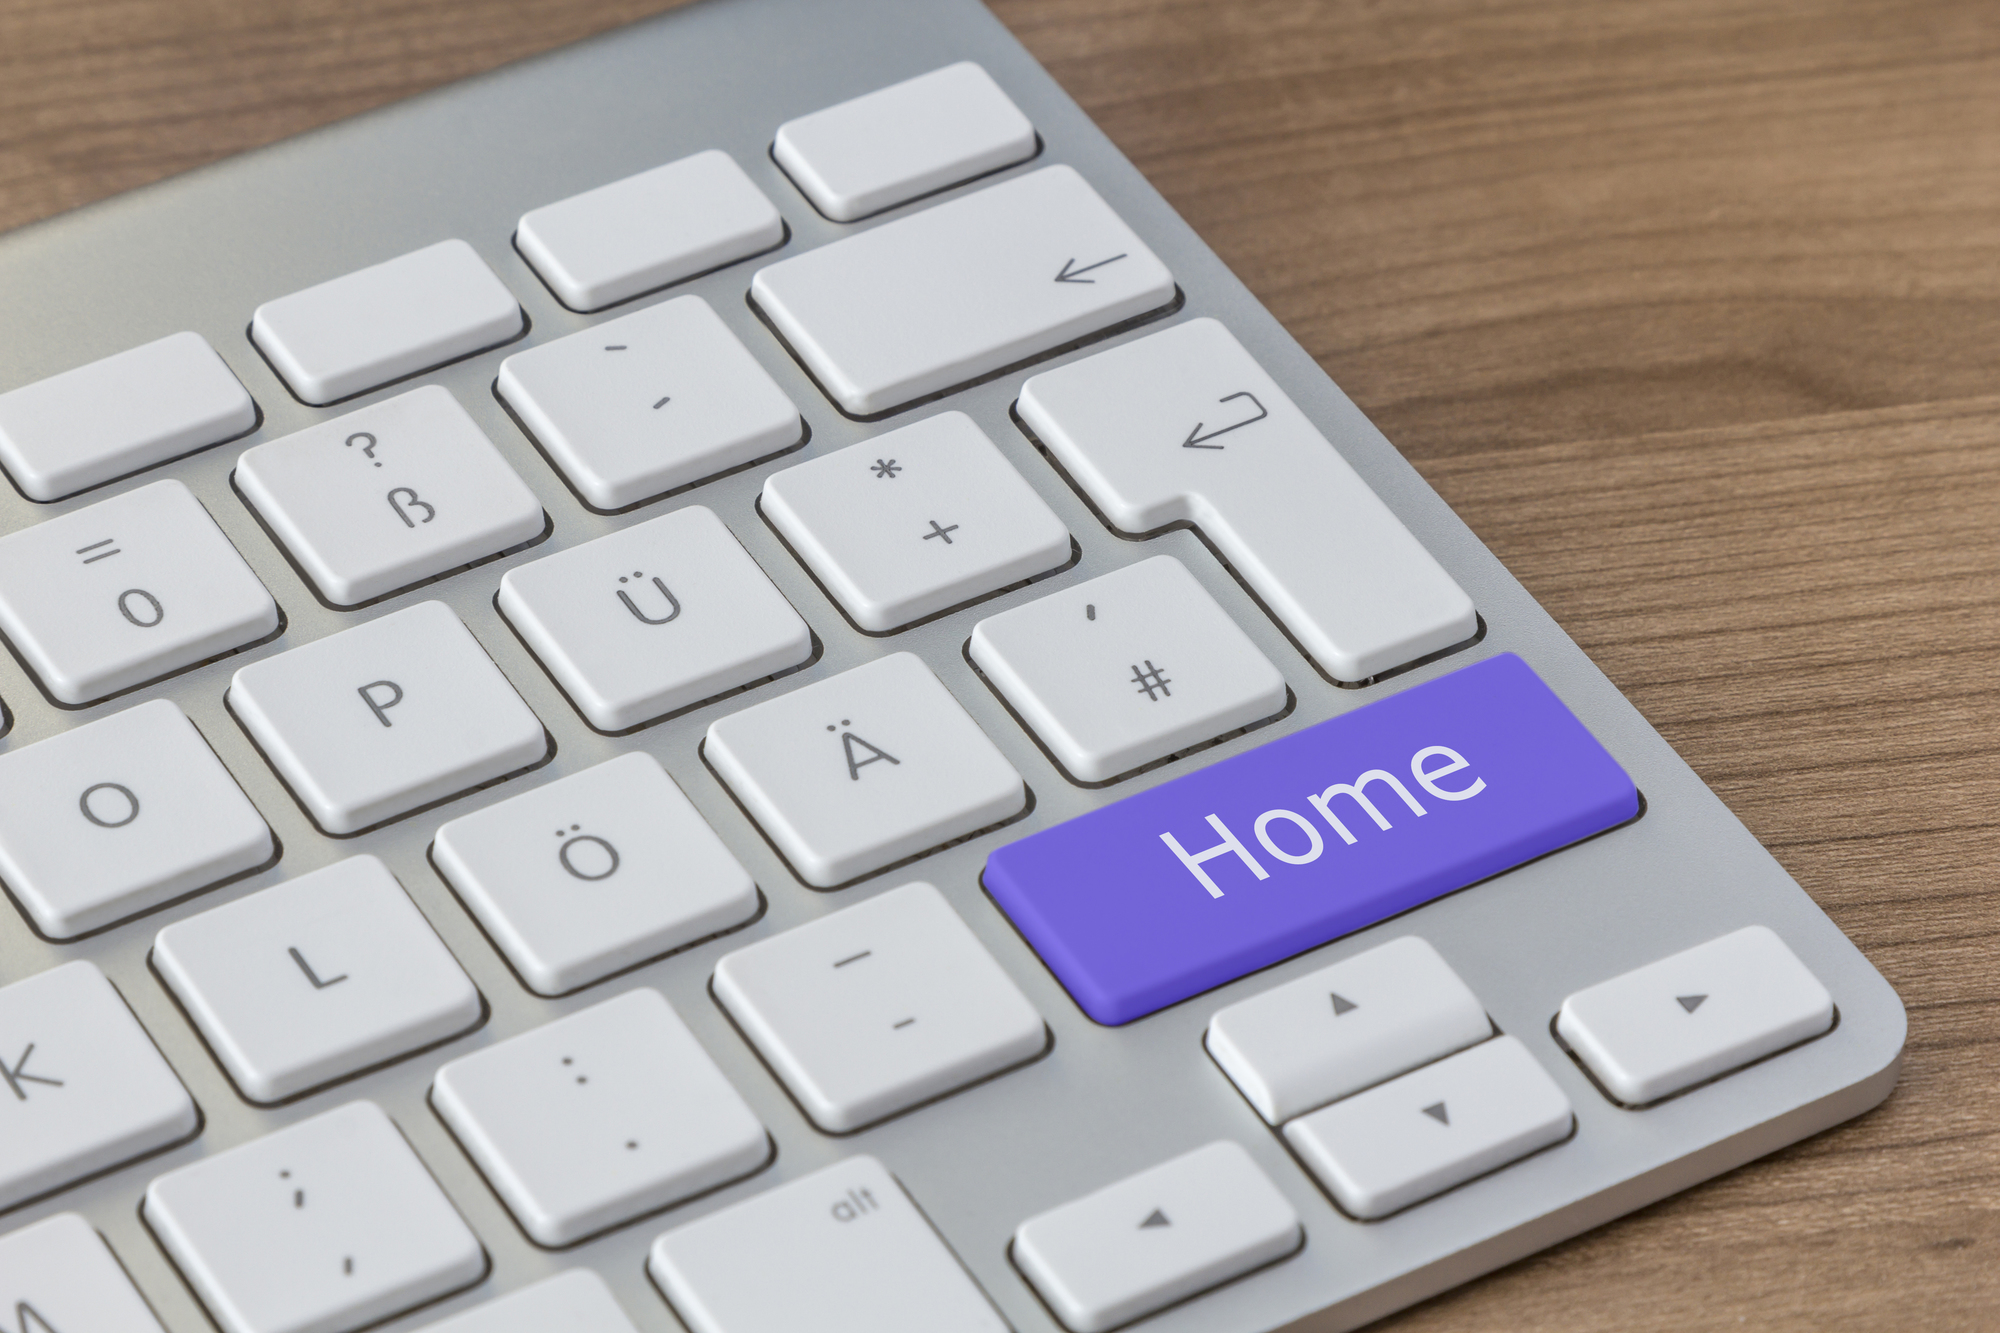 Home written on a large blue button of a modern keyboard on a wooden desktop